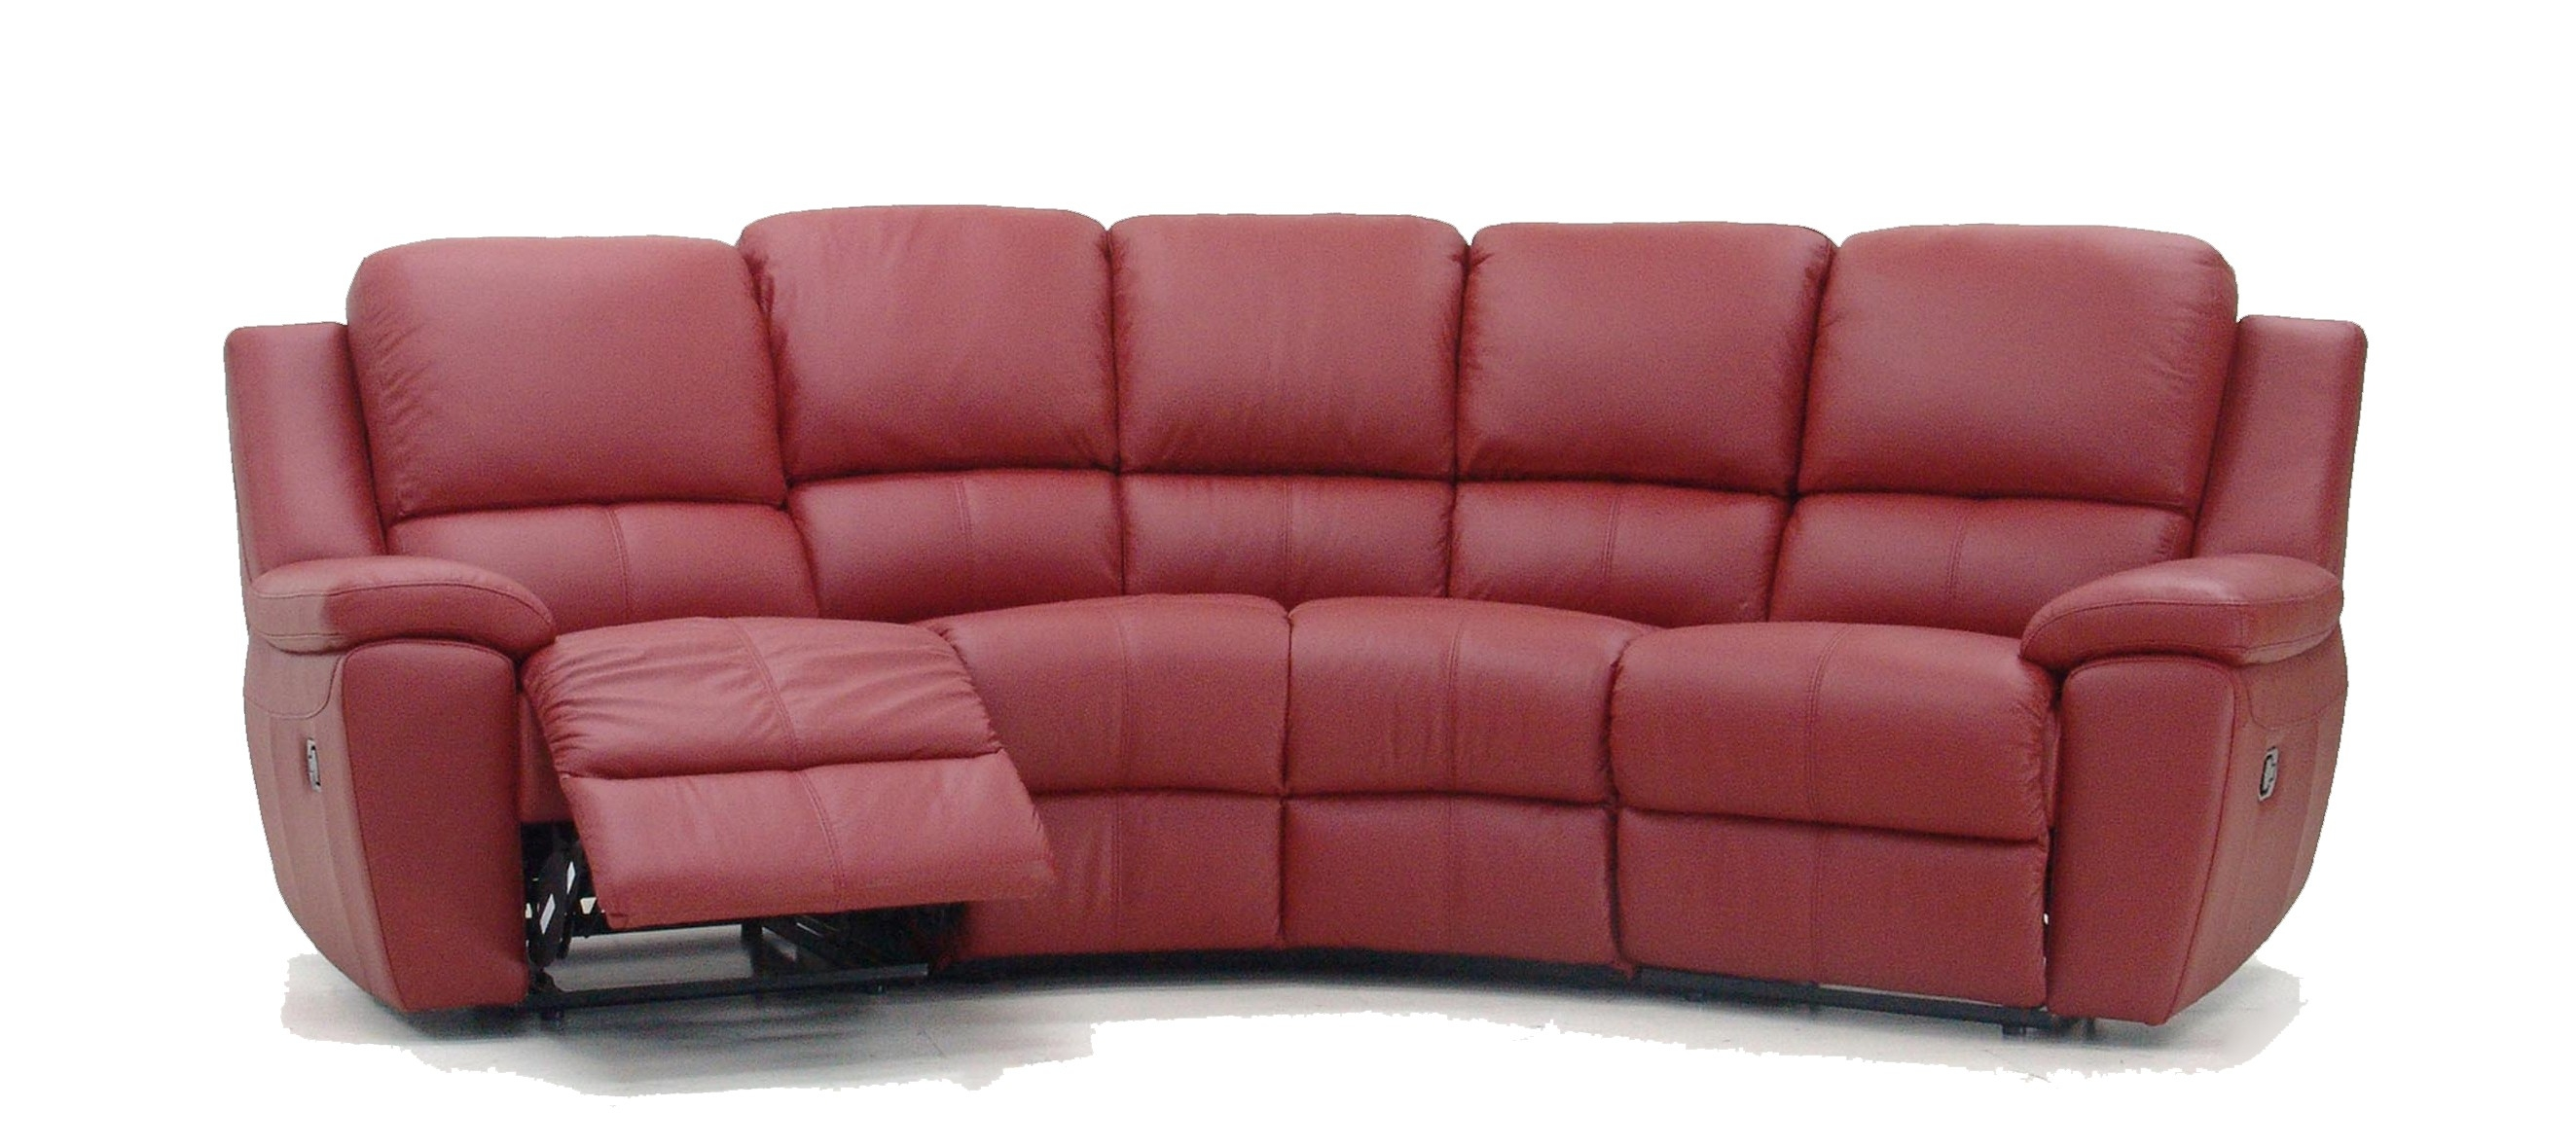 Rome Curved Corner Recliner Sofa Pertaining To Curved Recliner Sofa (Image 9 of 15)